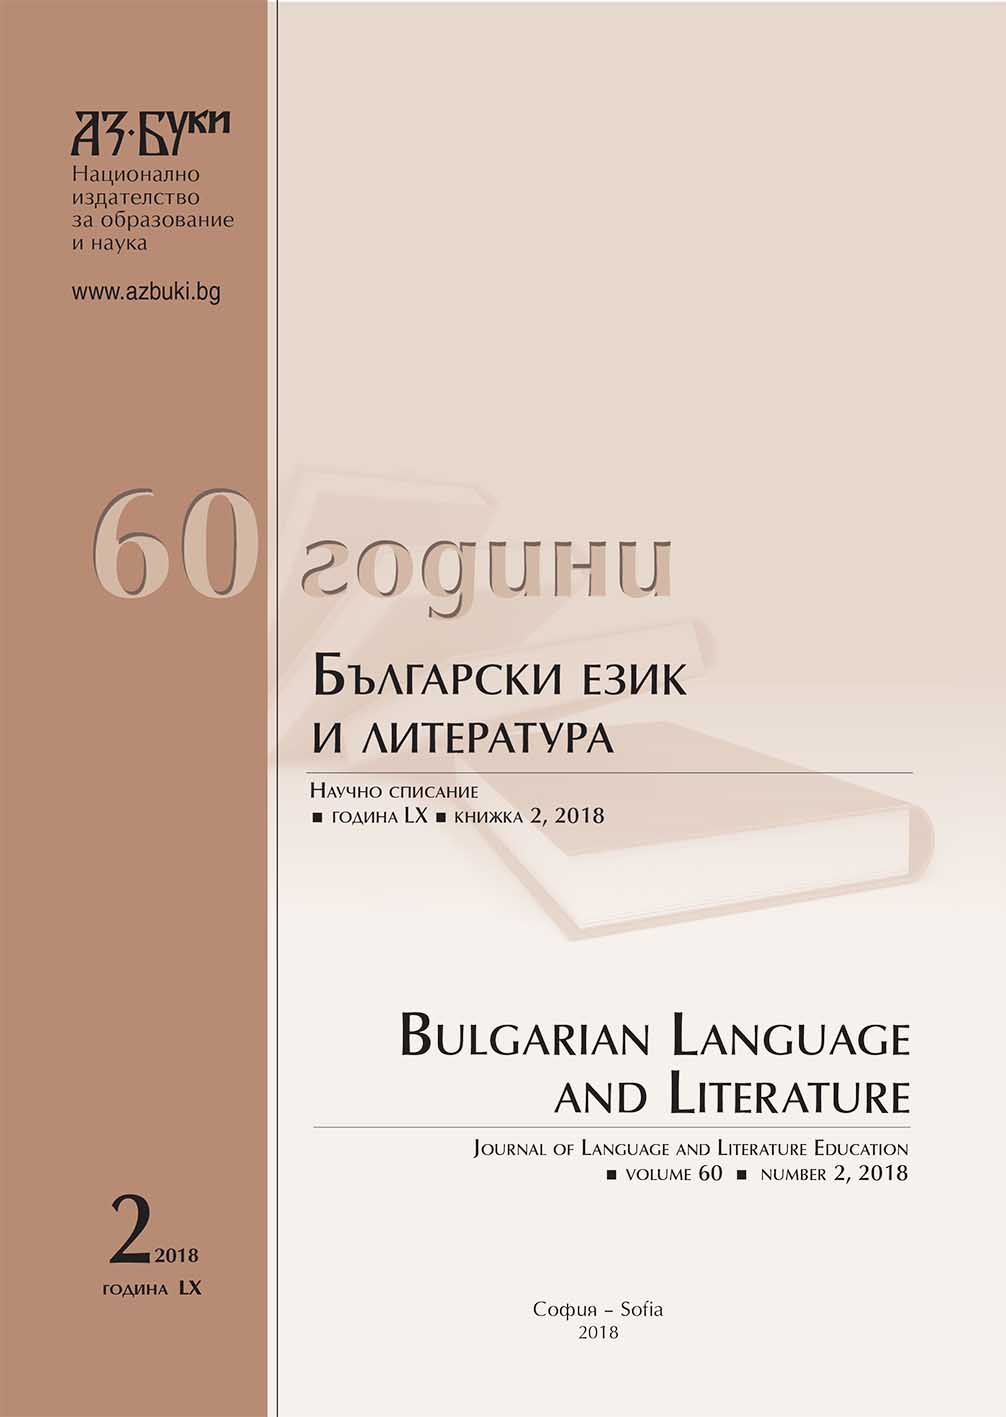 Formation of the New Bulgarian Literary Language during the Renaissance Cover Image